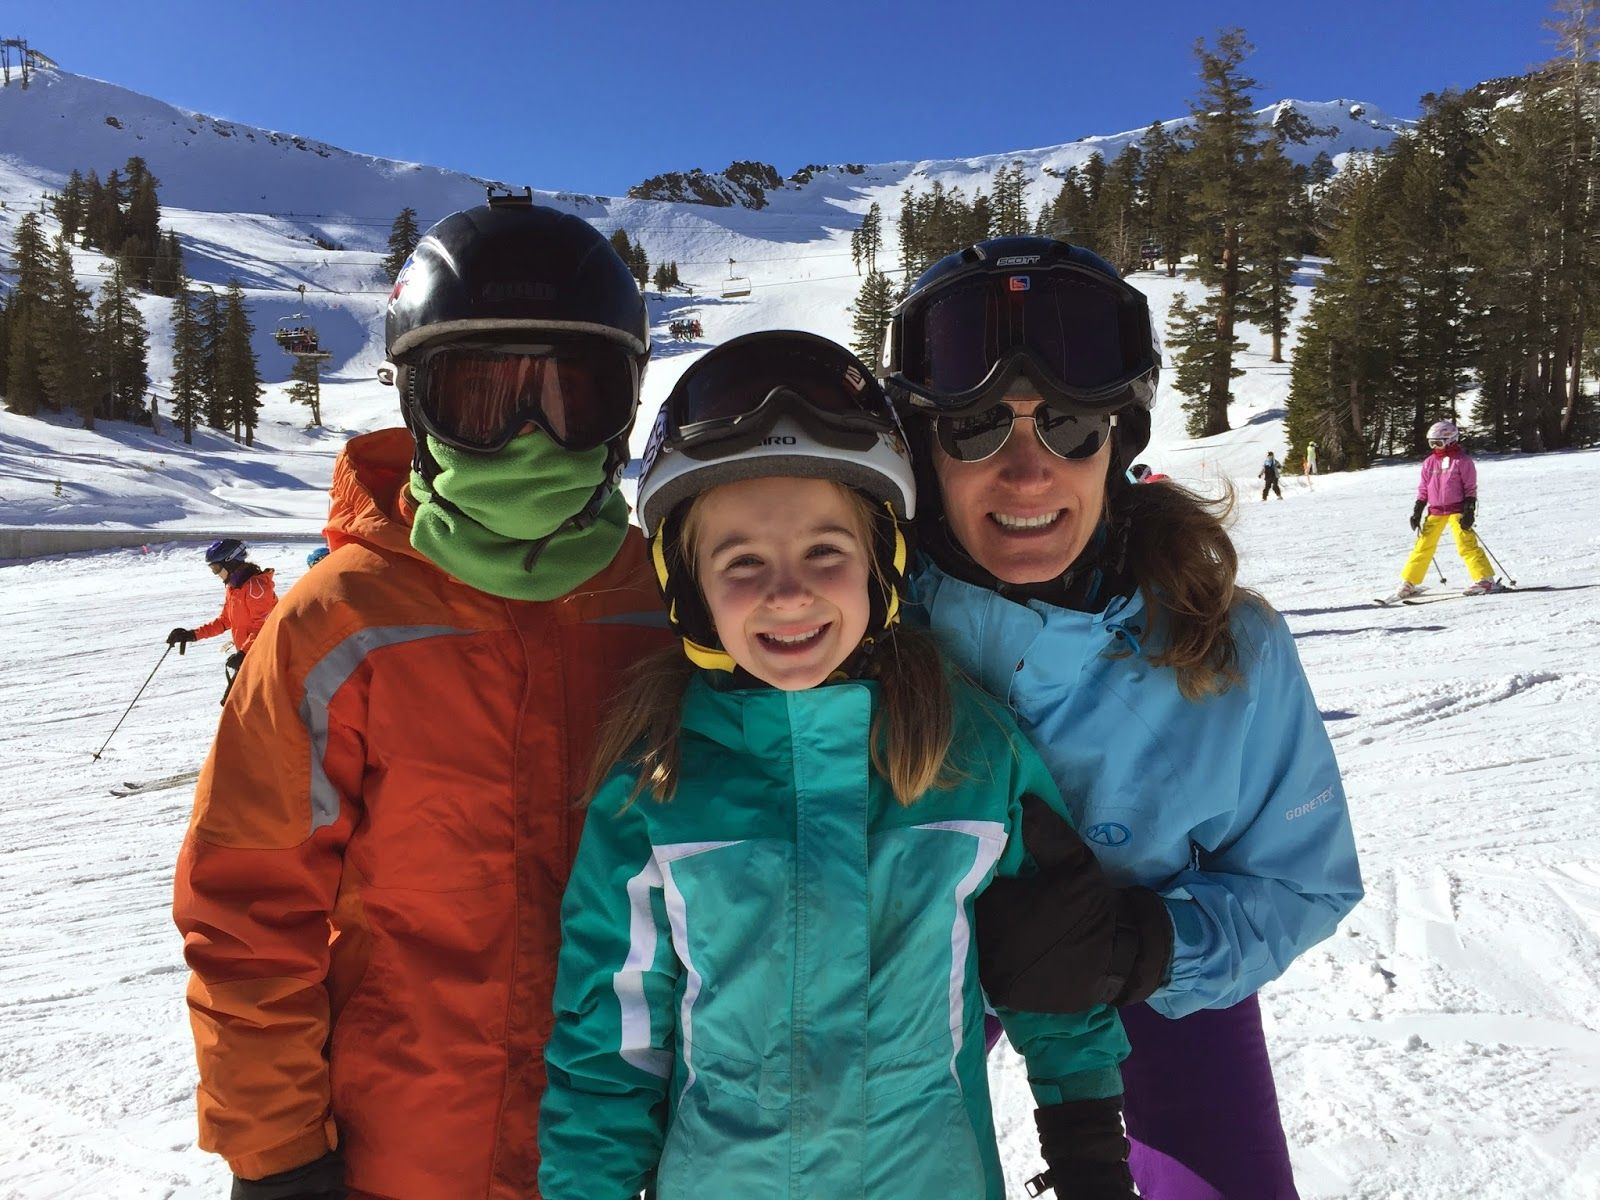 Starting off 2015 with Huge Smiles, Great Attitude, High Altitude, Mountain Style with Family & Friends Outside. Cheers to a great year ahead friends! #SquawValleySkiResort #California